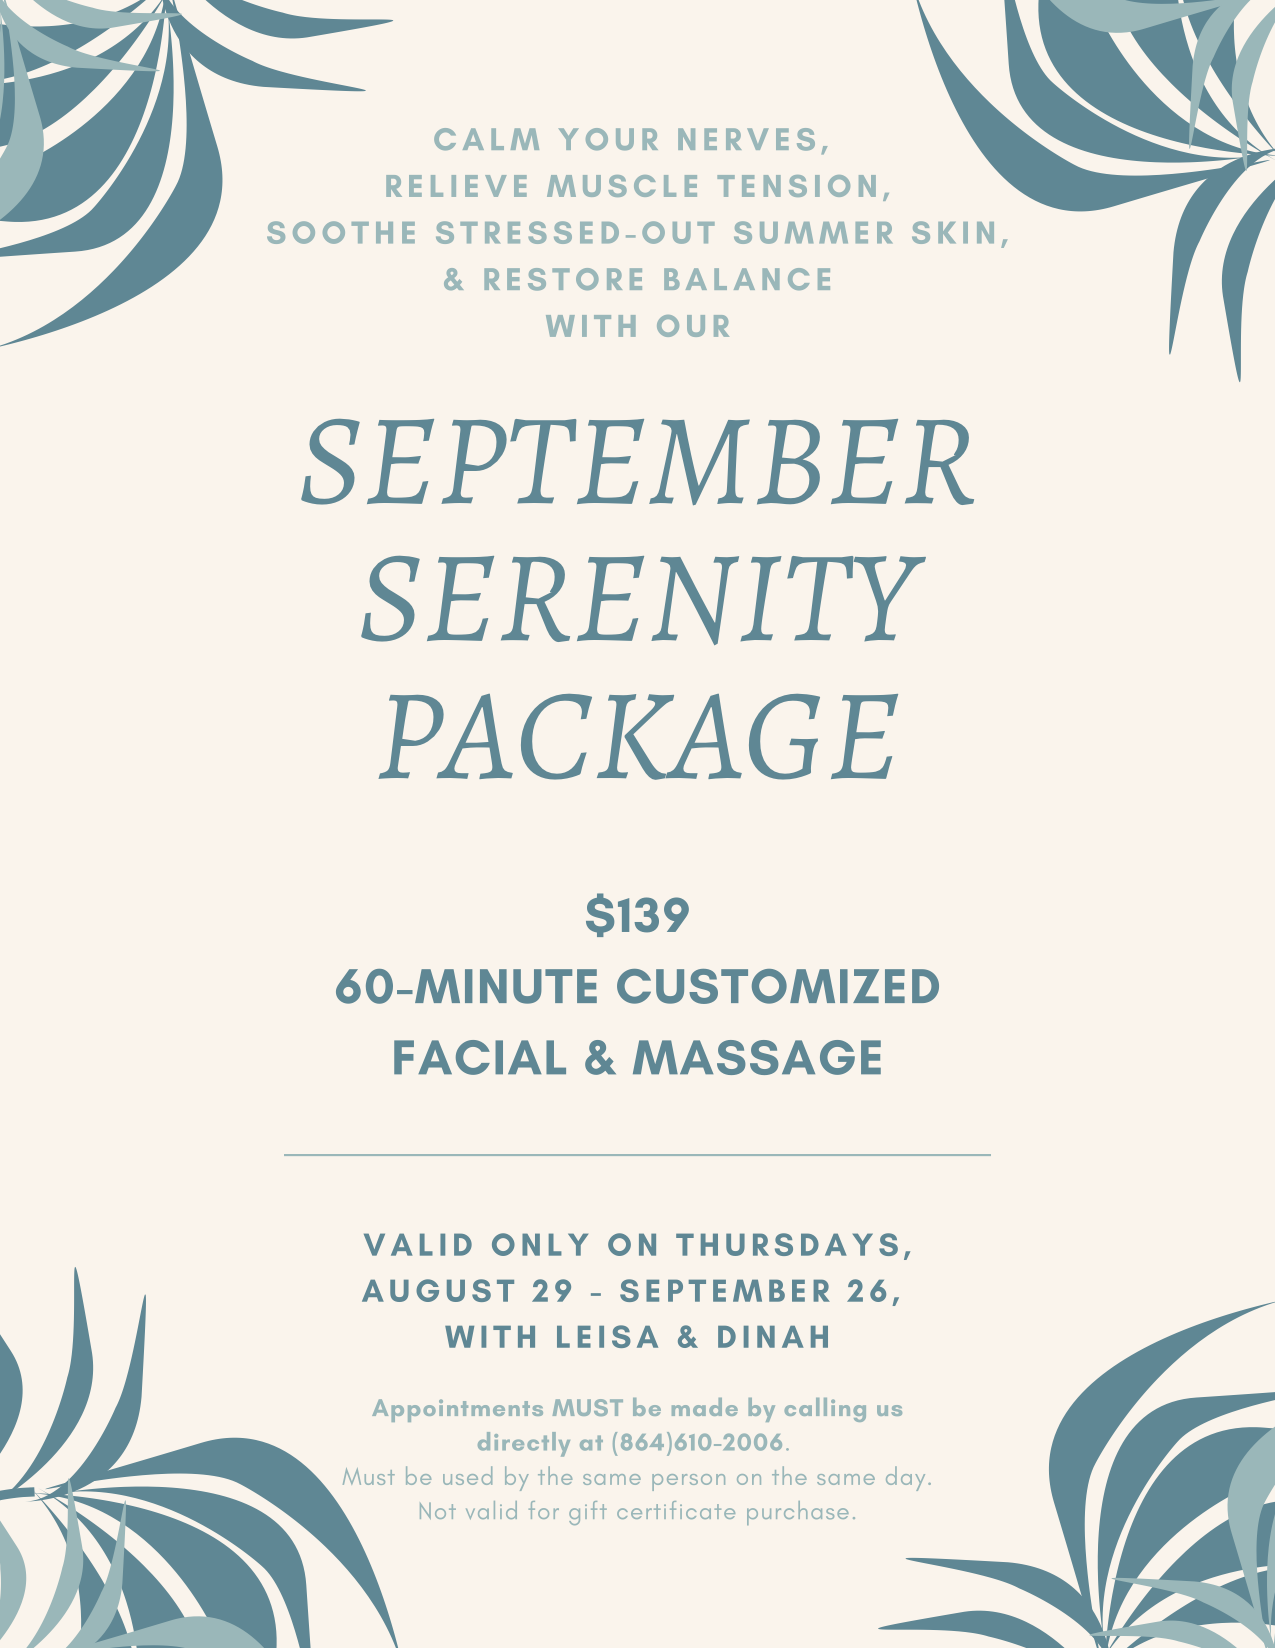 SEPTEMBER SERENITY PACKAGE copy.png